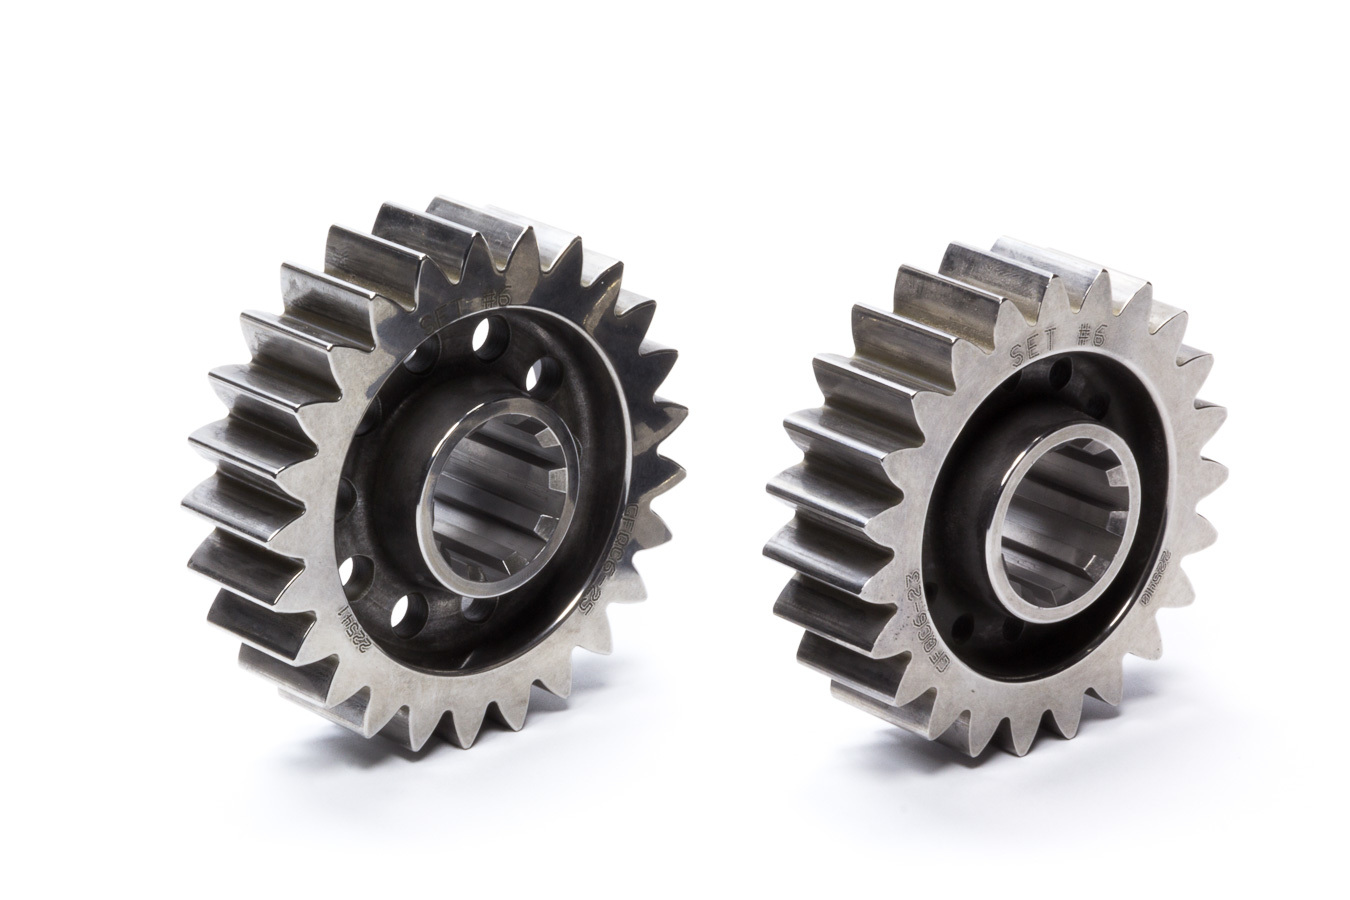 Diversified Machine FFQCG-6 Quick Change Gear Set, Friction Fighter, Set 6, 10 Spline, 4.12 Ratios 4.48 / 3.79, 4.86 Ratios 5.28 / 4.47, Steel, Each